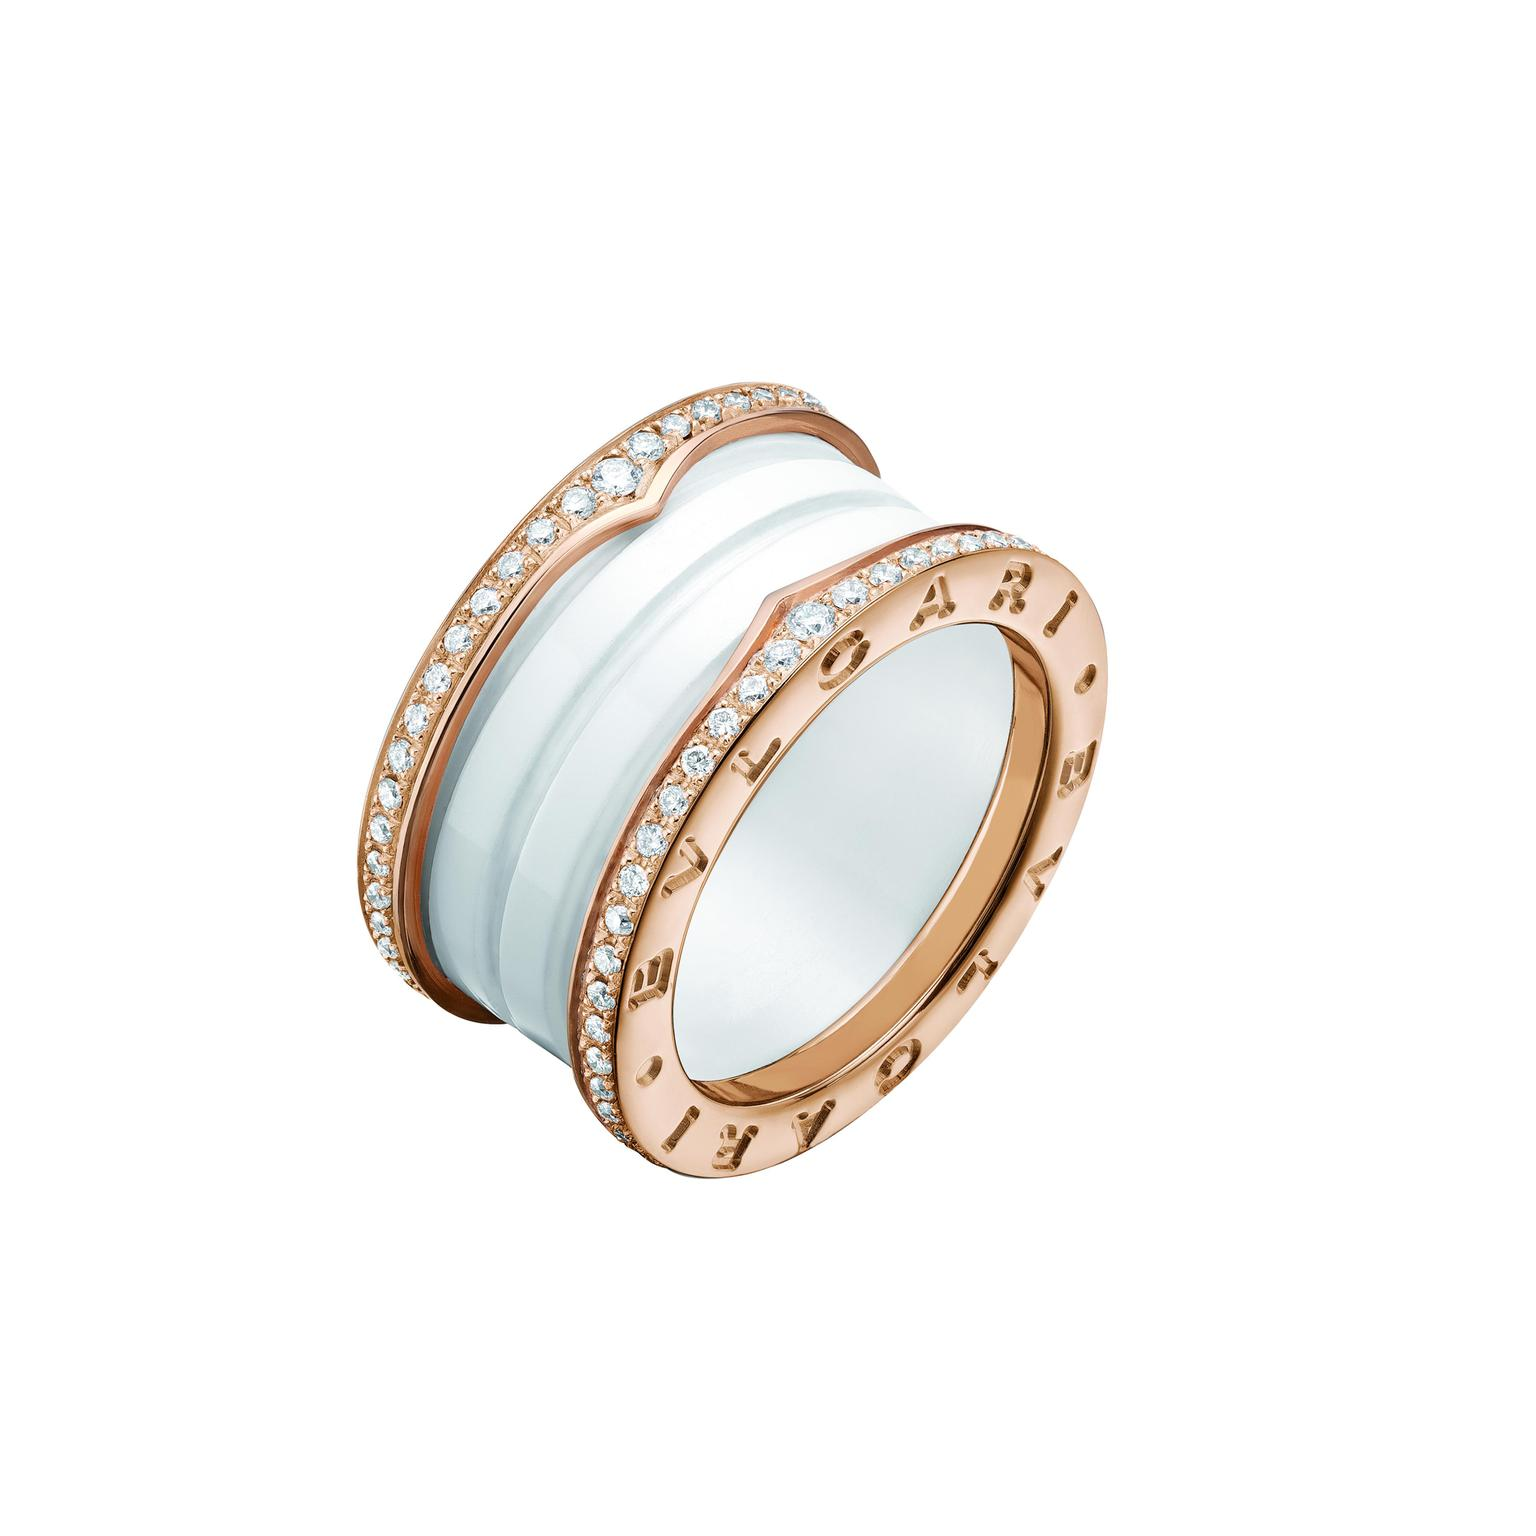 Iconic jewellery of our times best loved rings